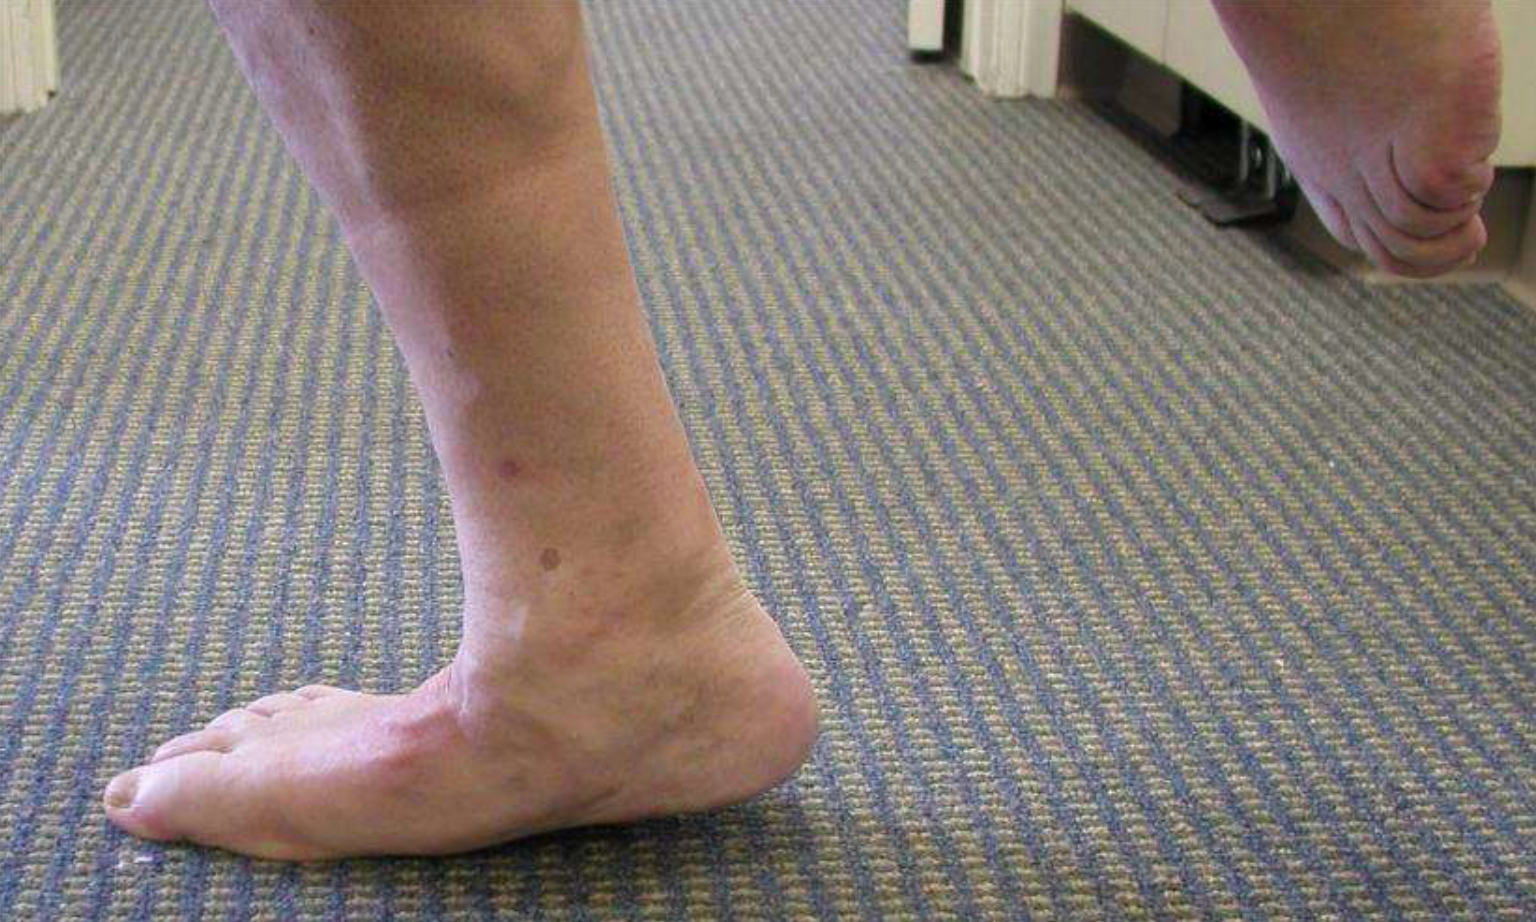 Failed single leg heel raise test. Note: Midfoot collapse and MT joint flexion.